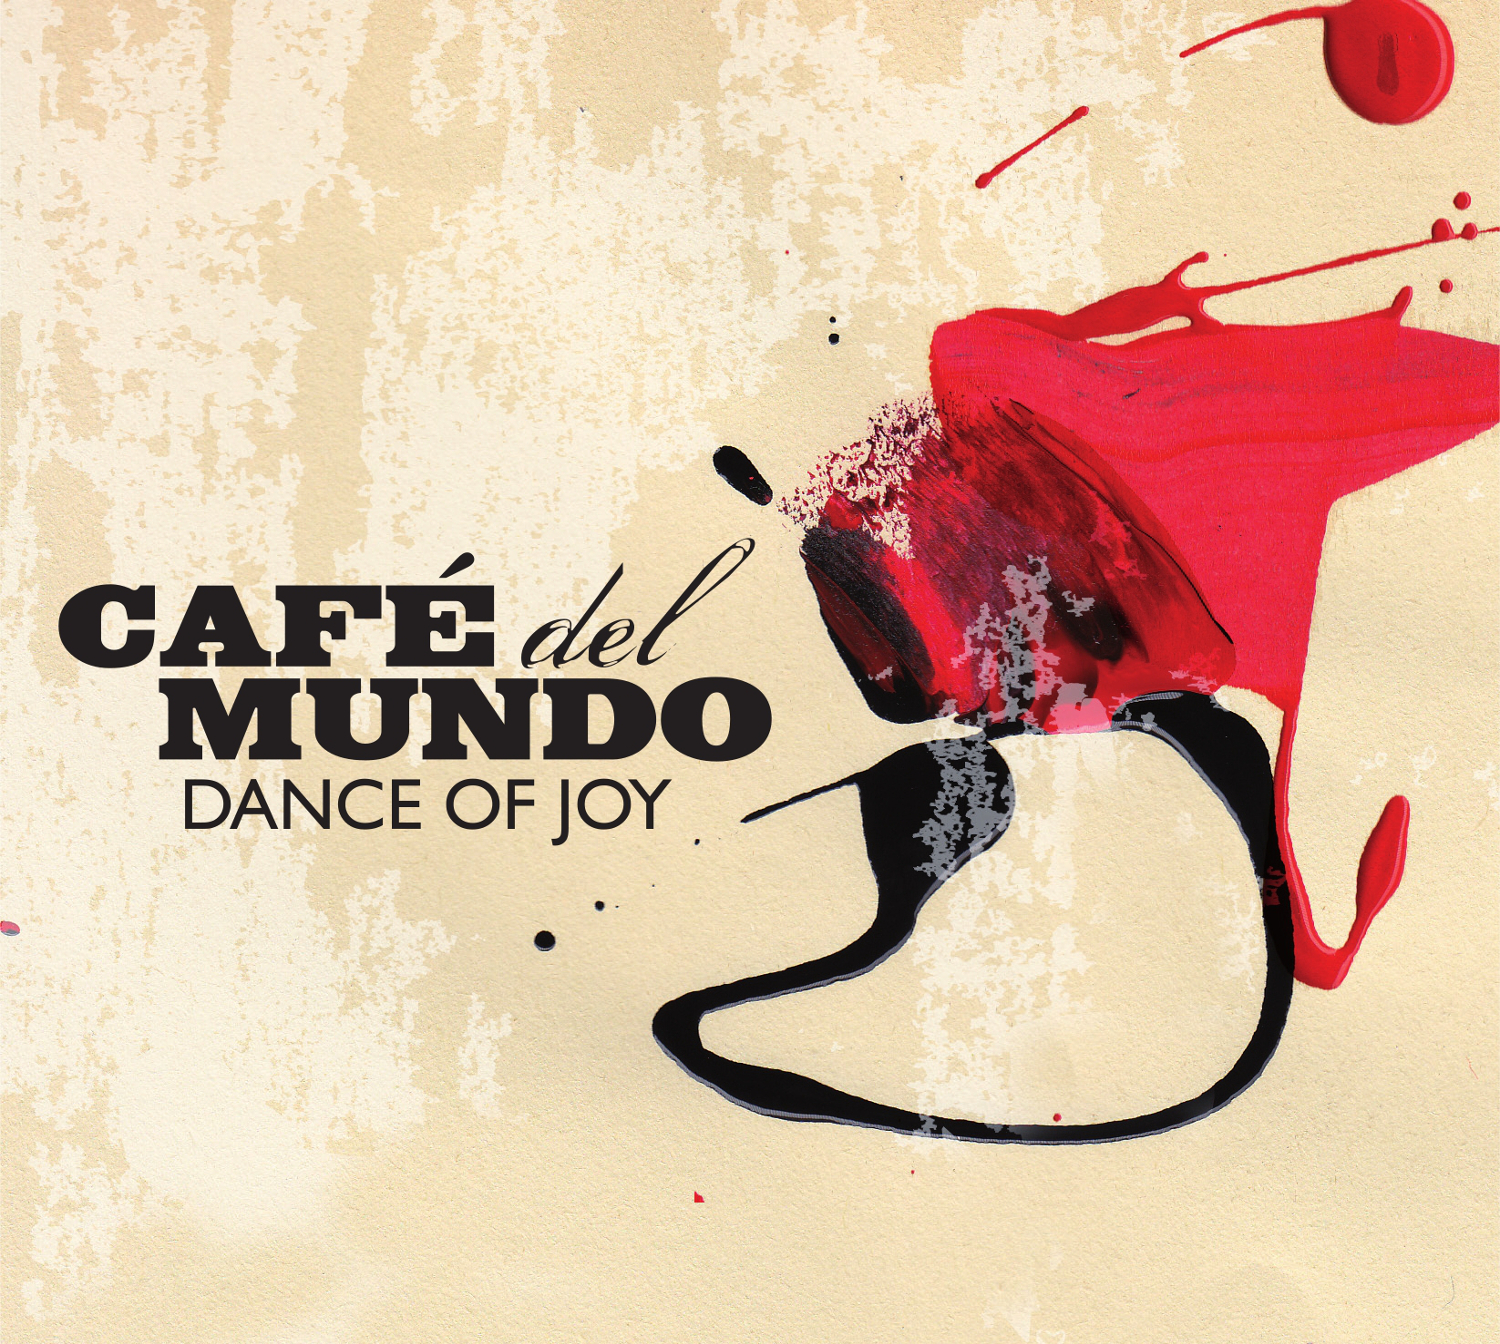 Dance of Joy - Café del Mundo herunterladen